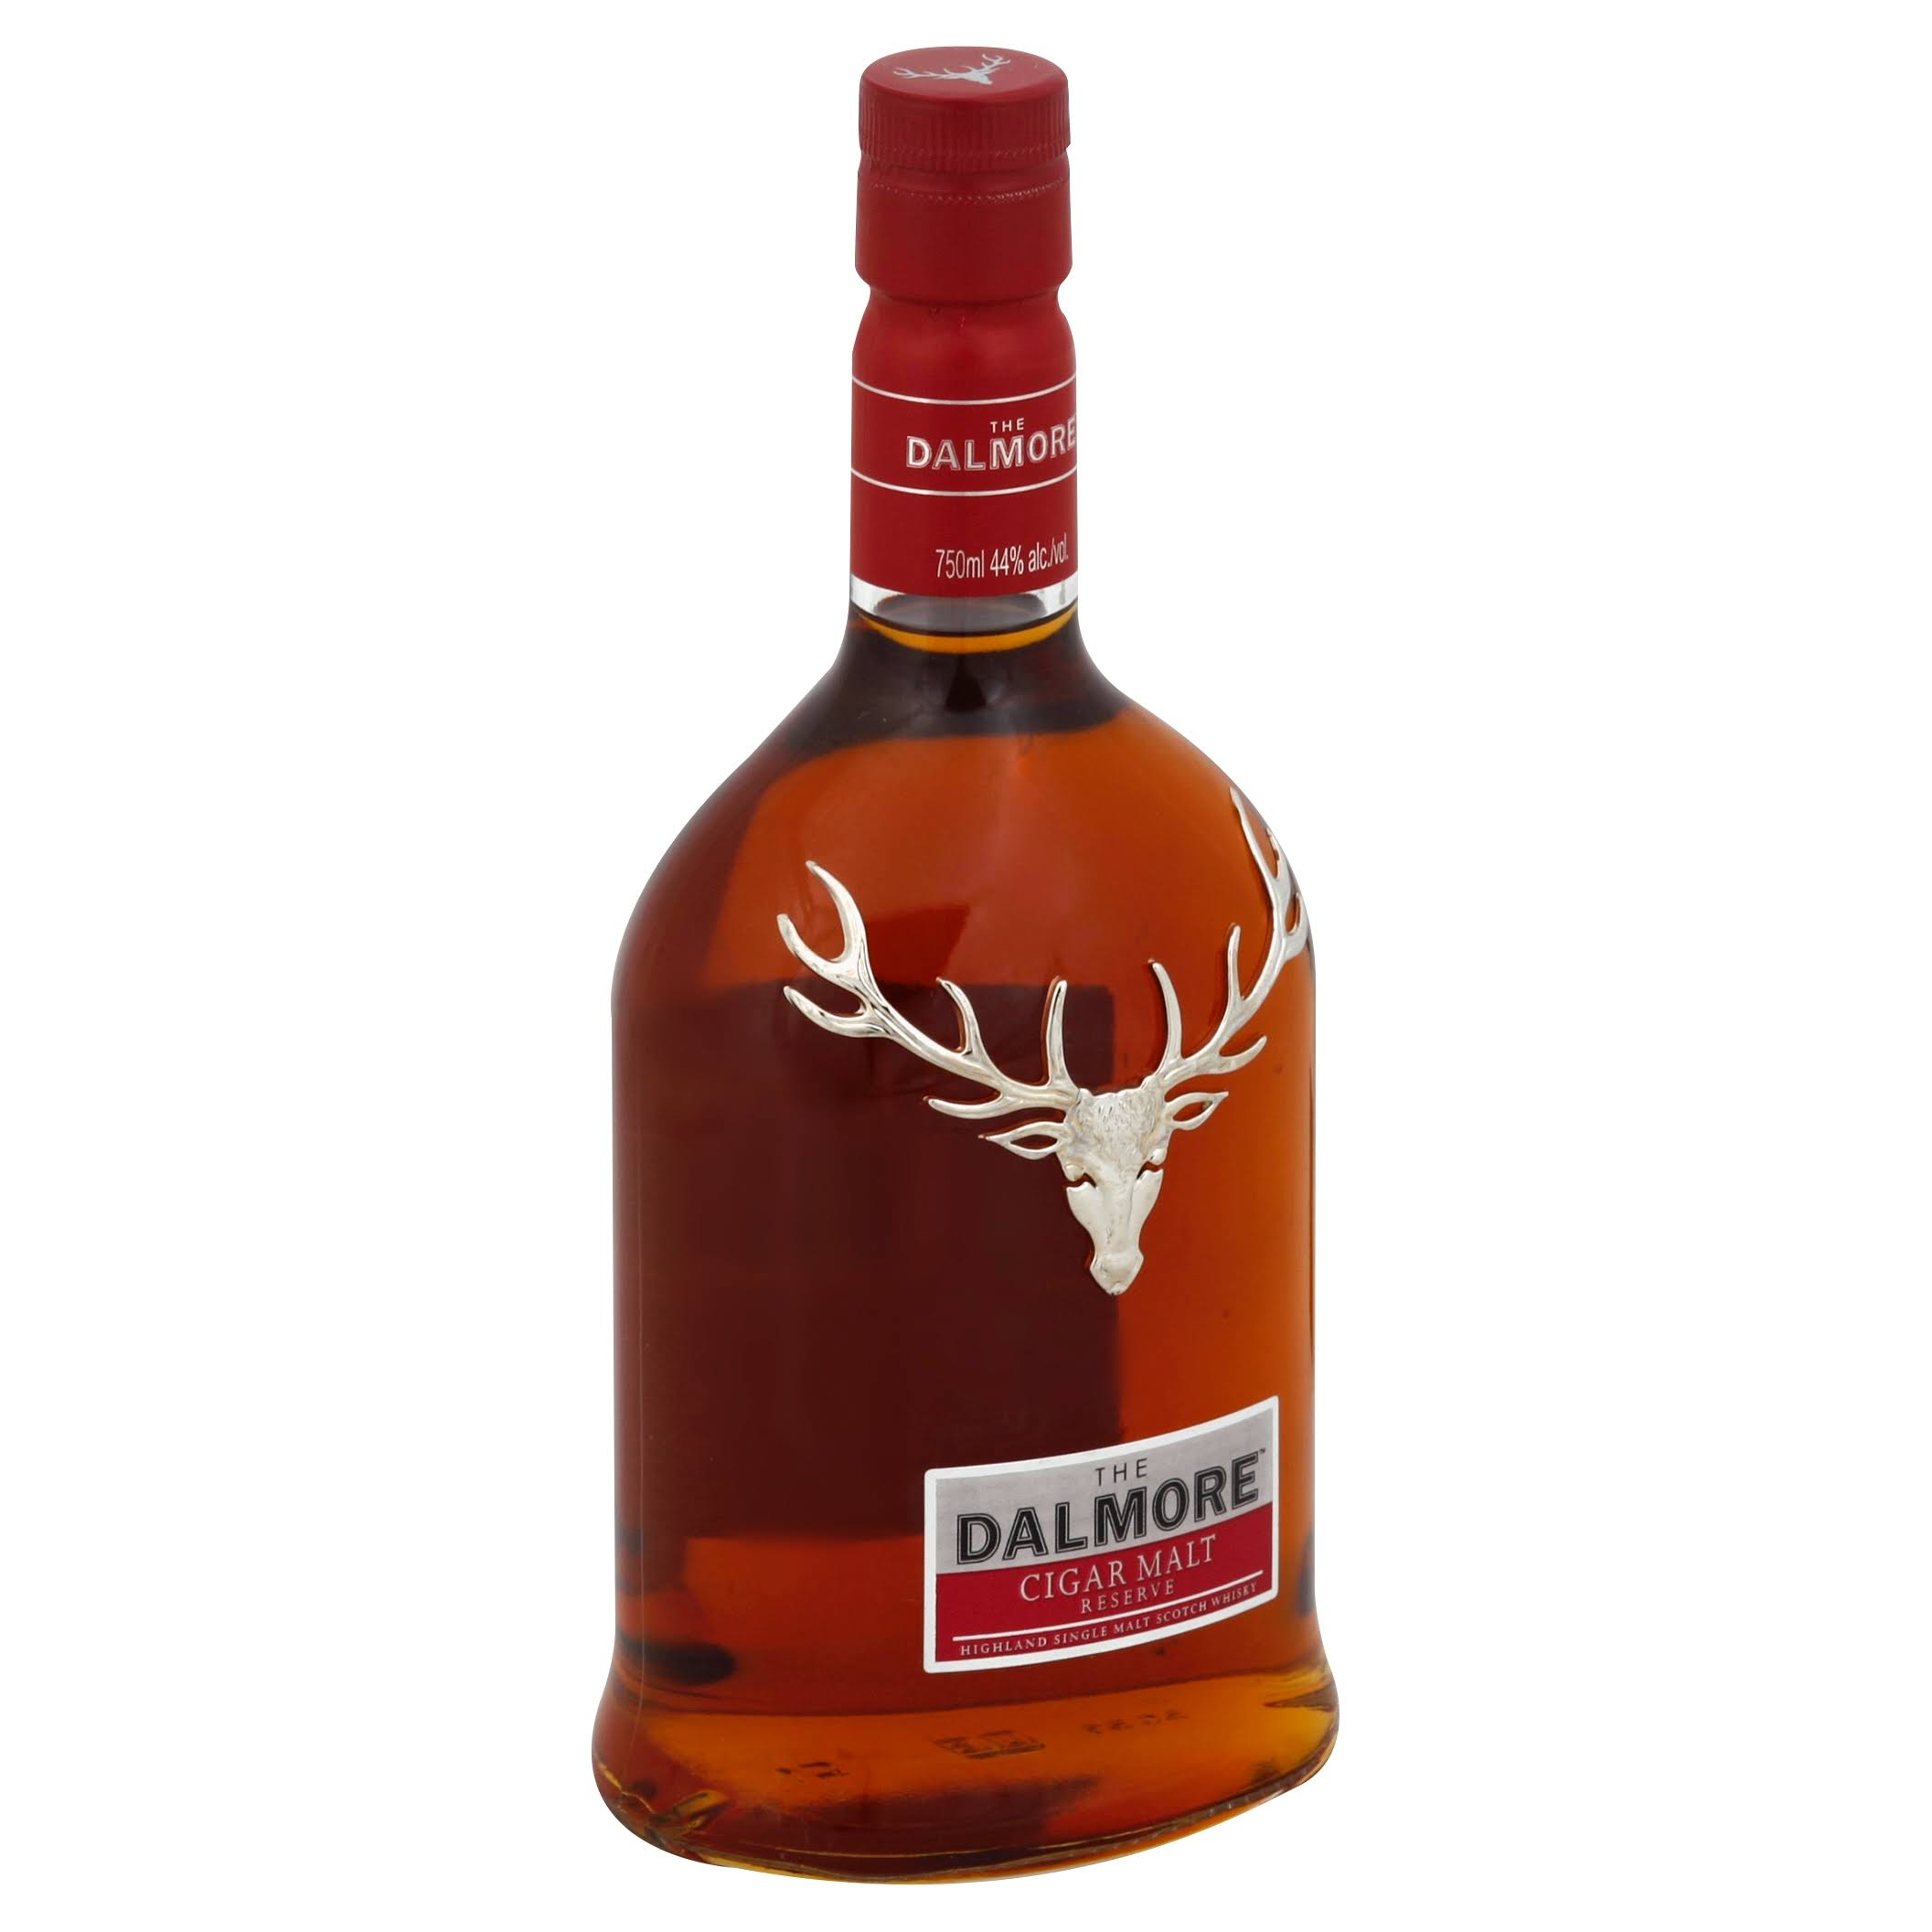 Dalmore Cigar Malt Reserve Highland Single Malt Scotch